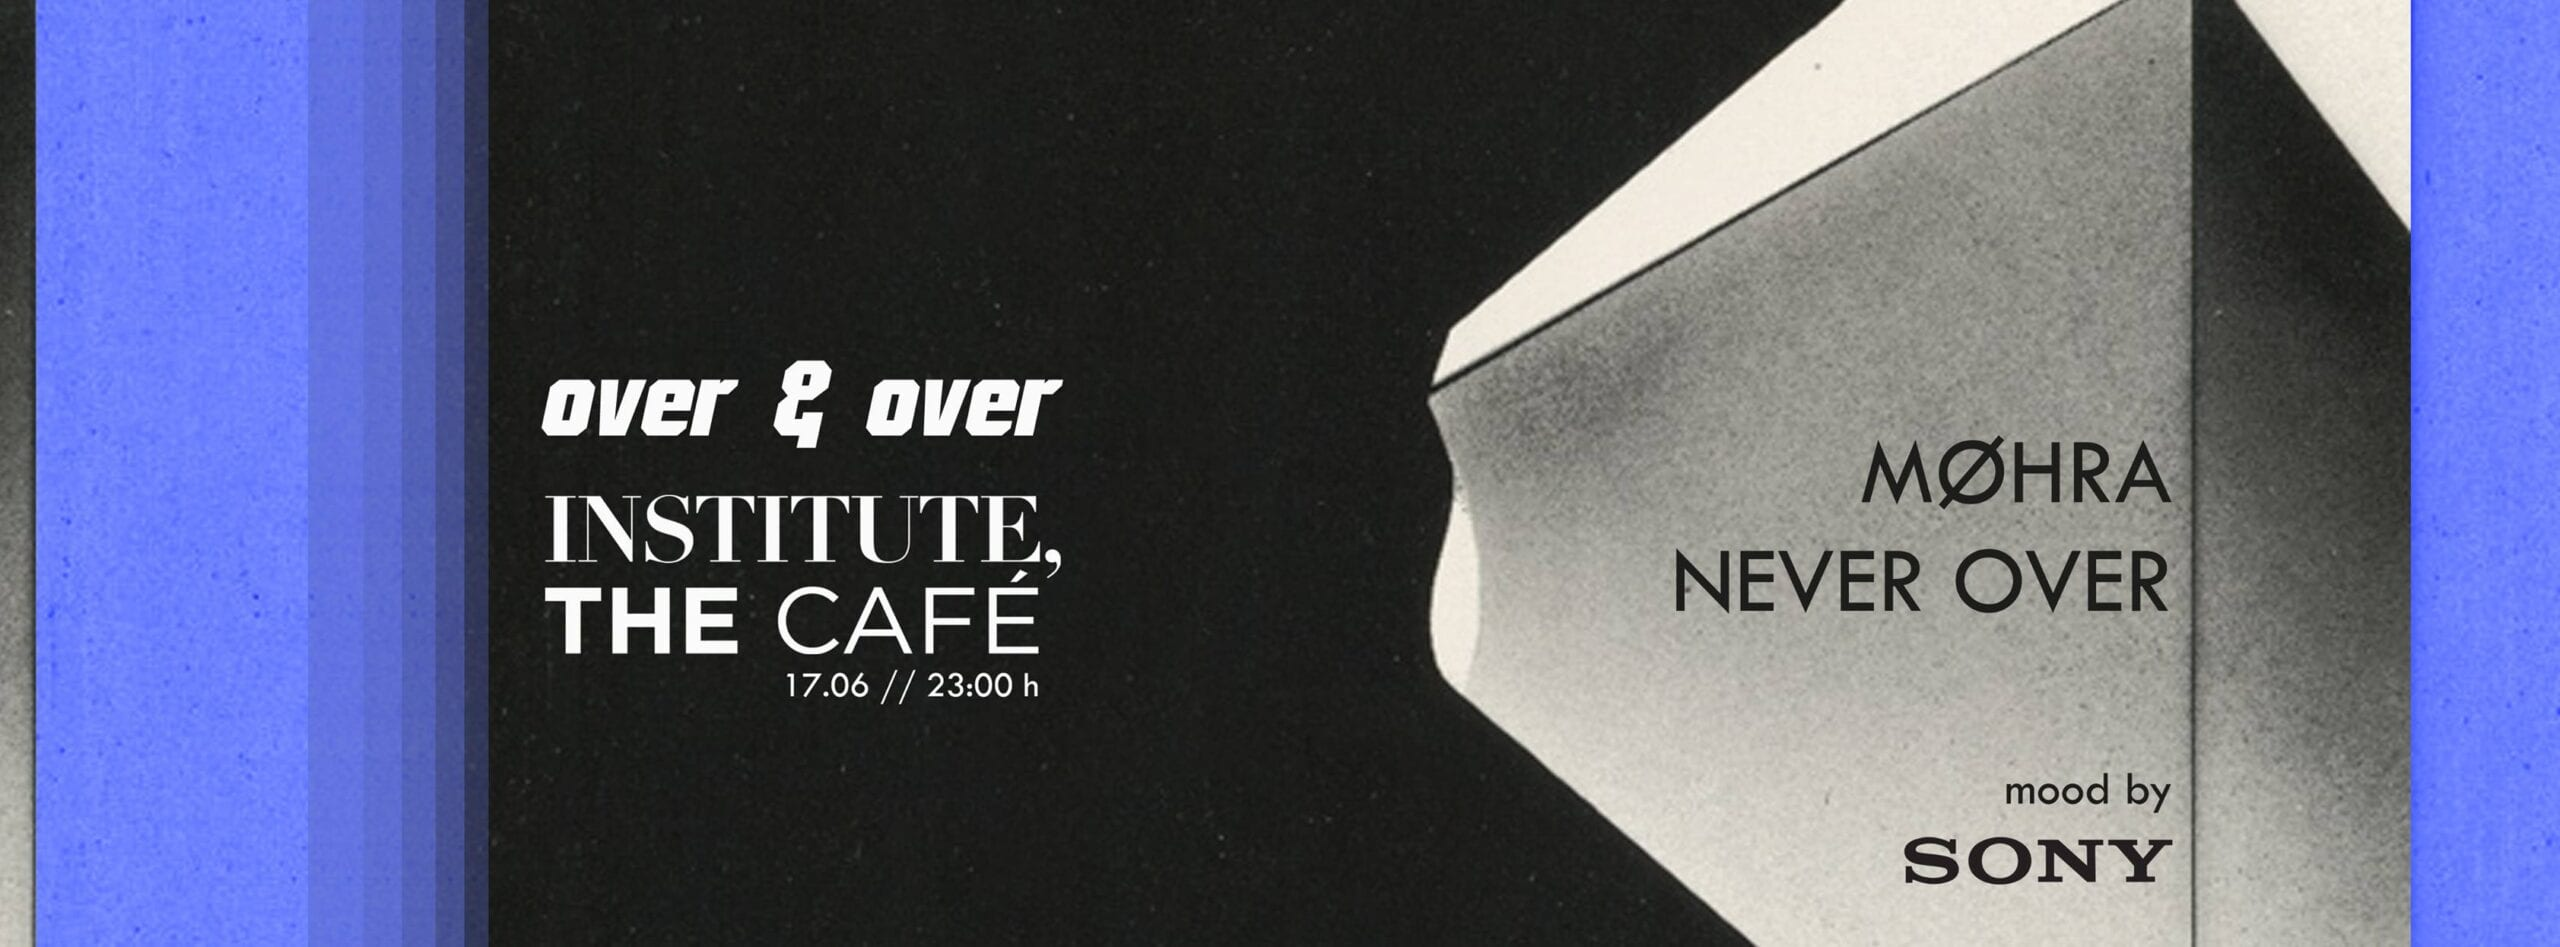 Over & Over w. MØHRA & NEVER OVER at The Institute